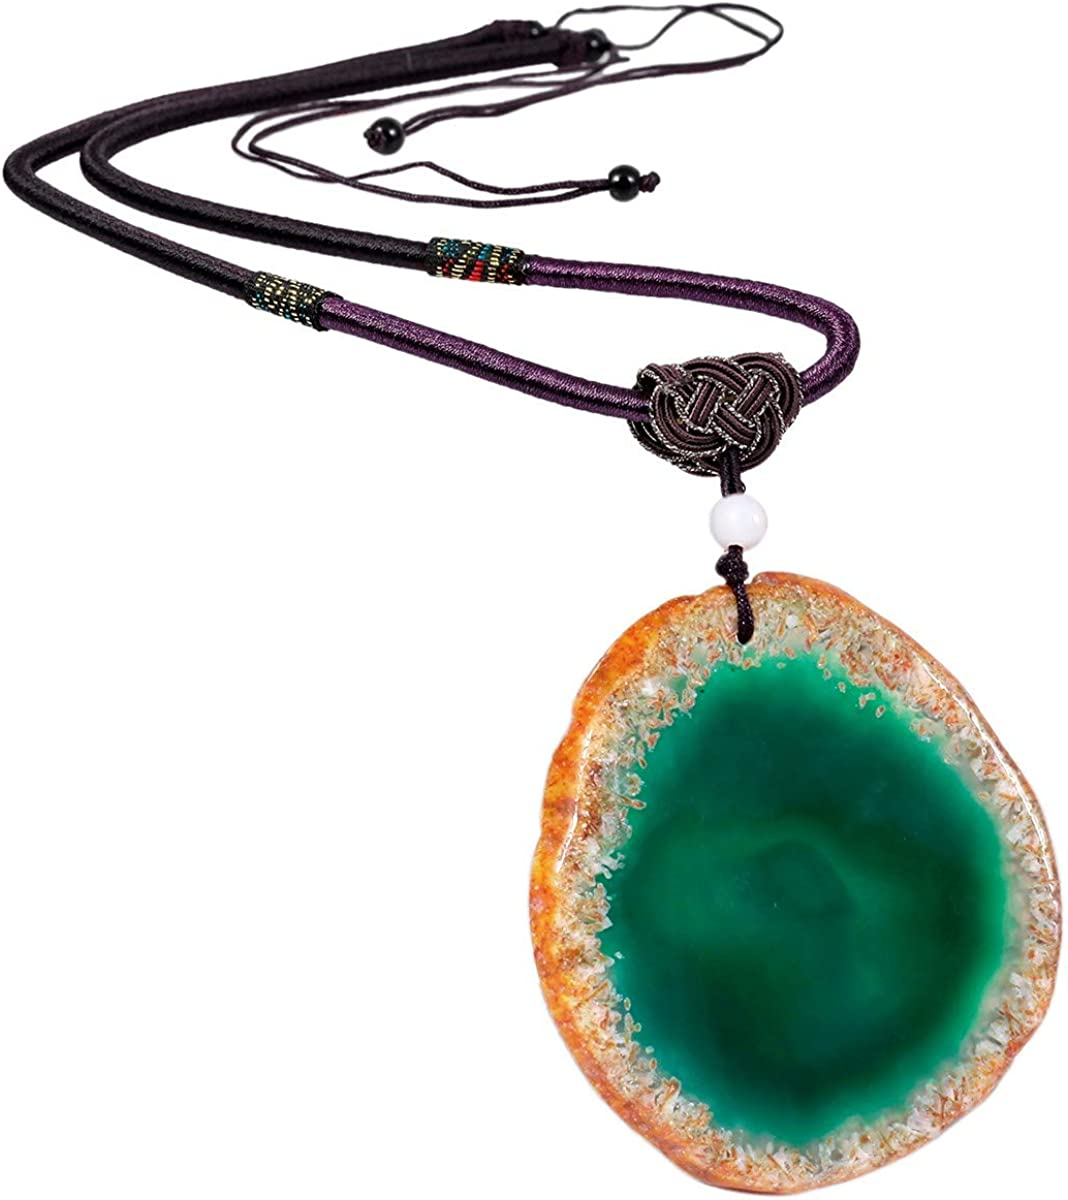 "SUNYIK Natural Agate Slice Stone Pendant with Chain for Women, Healing Crystal Necklace for Men, Adjustable 17""-29"" Strand"